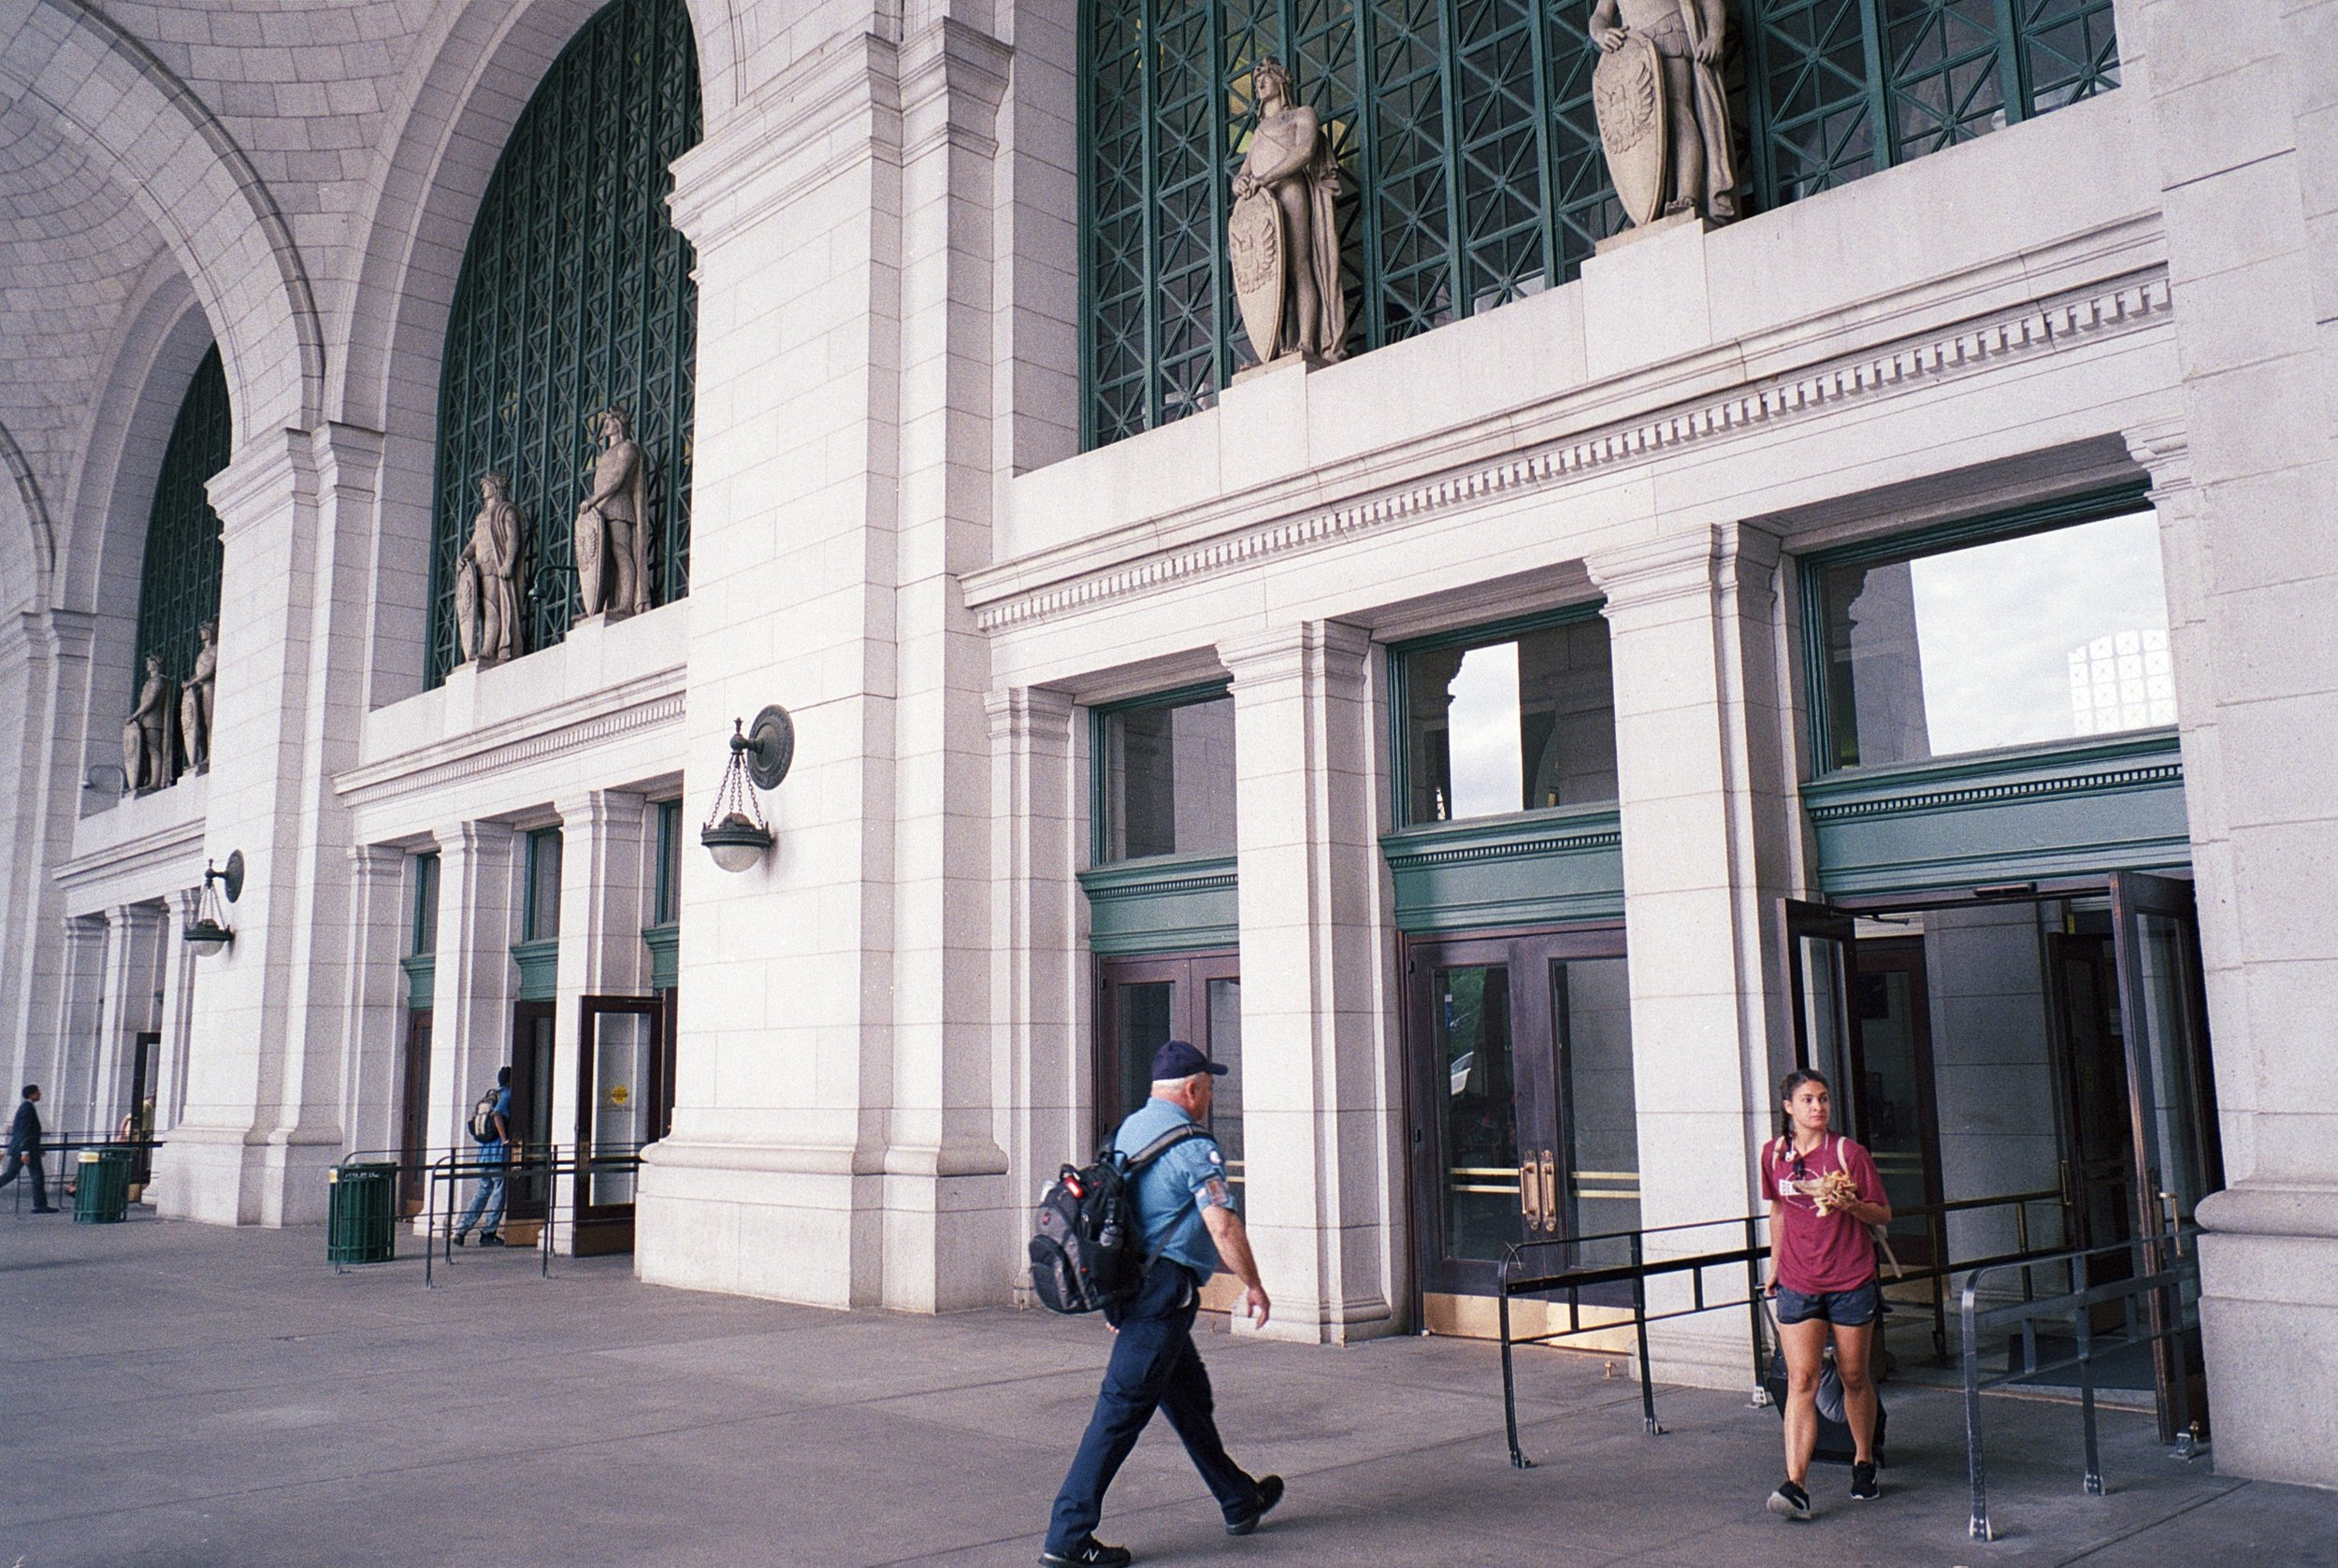 The entrance to Union Station.